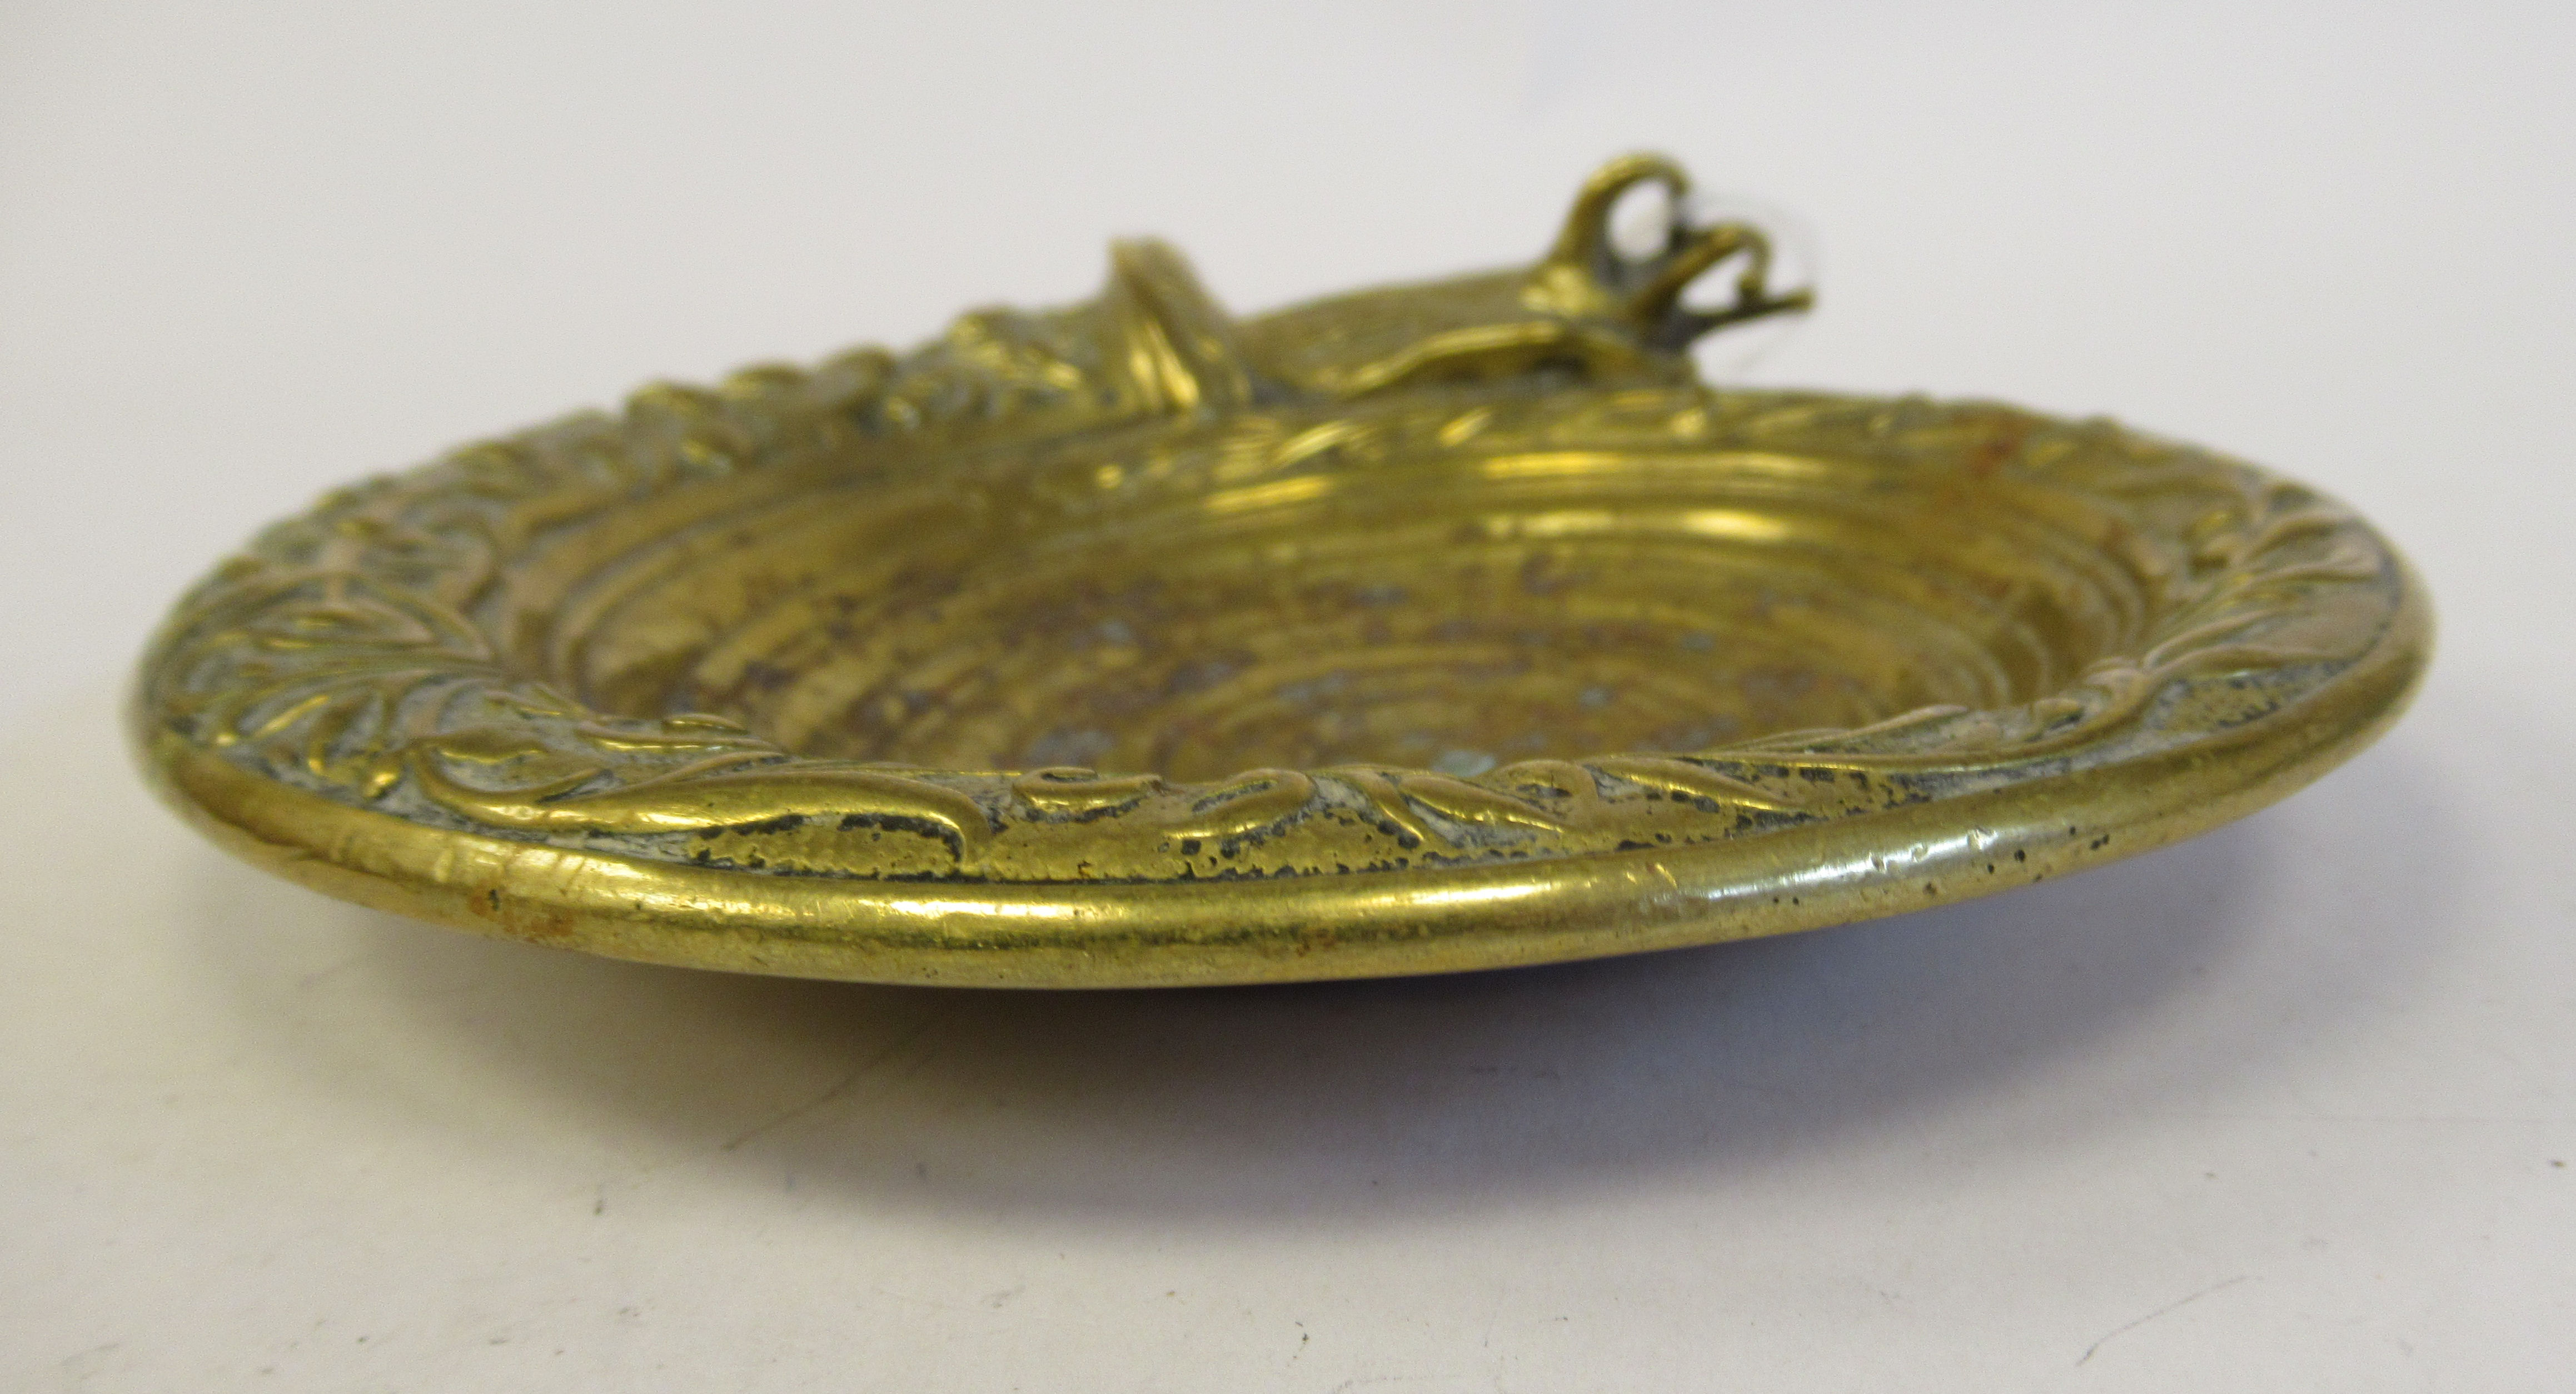 A late 19thC decoratively cast gilt metal dish, the border featuring a snail emerging from a - Image 2 of 4